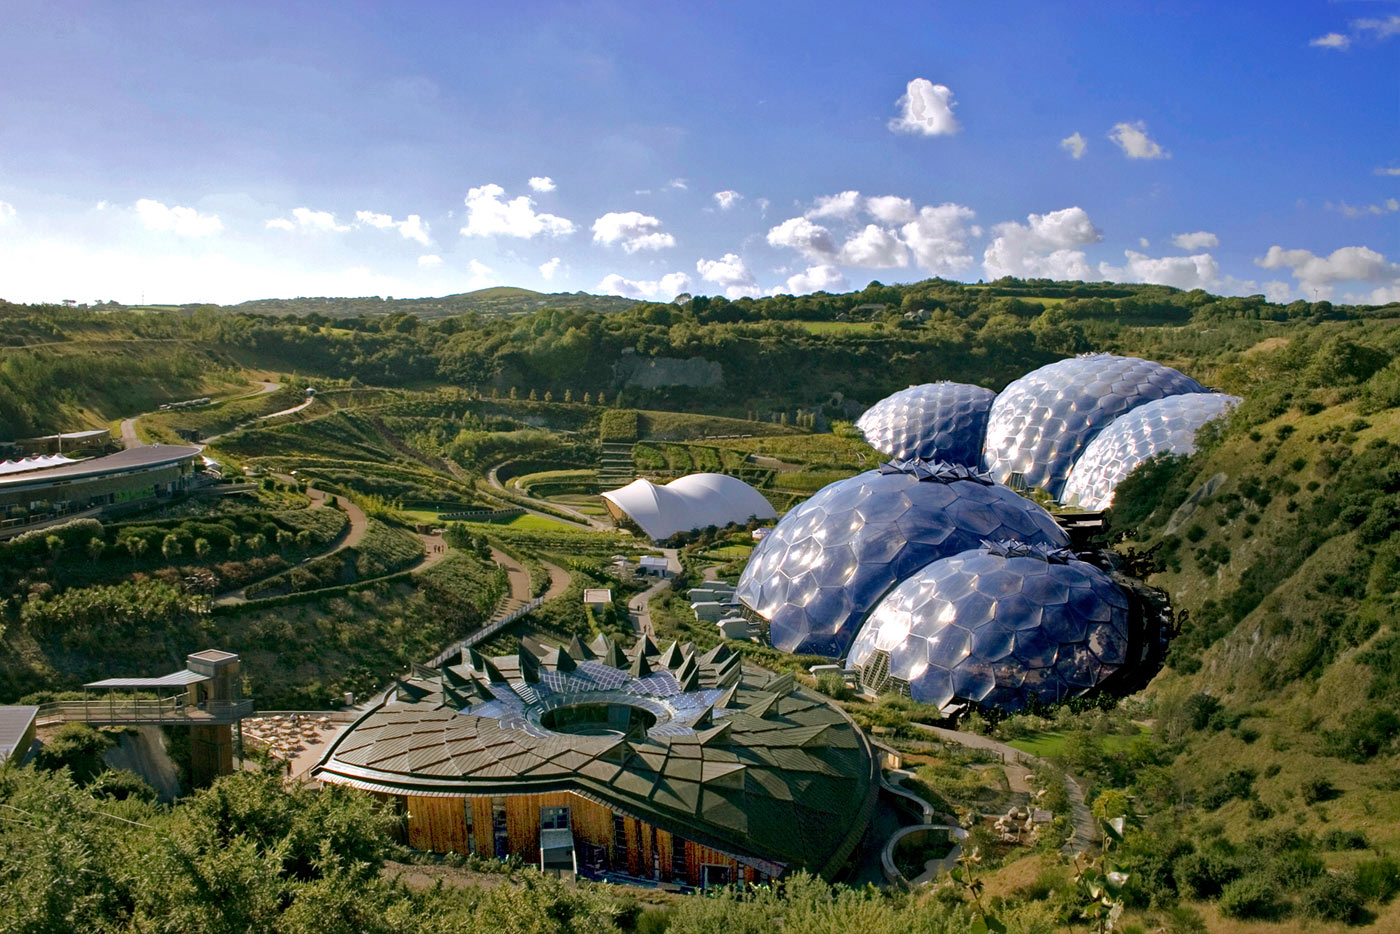 The Eden Project2